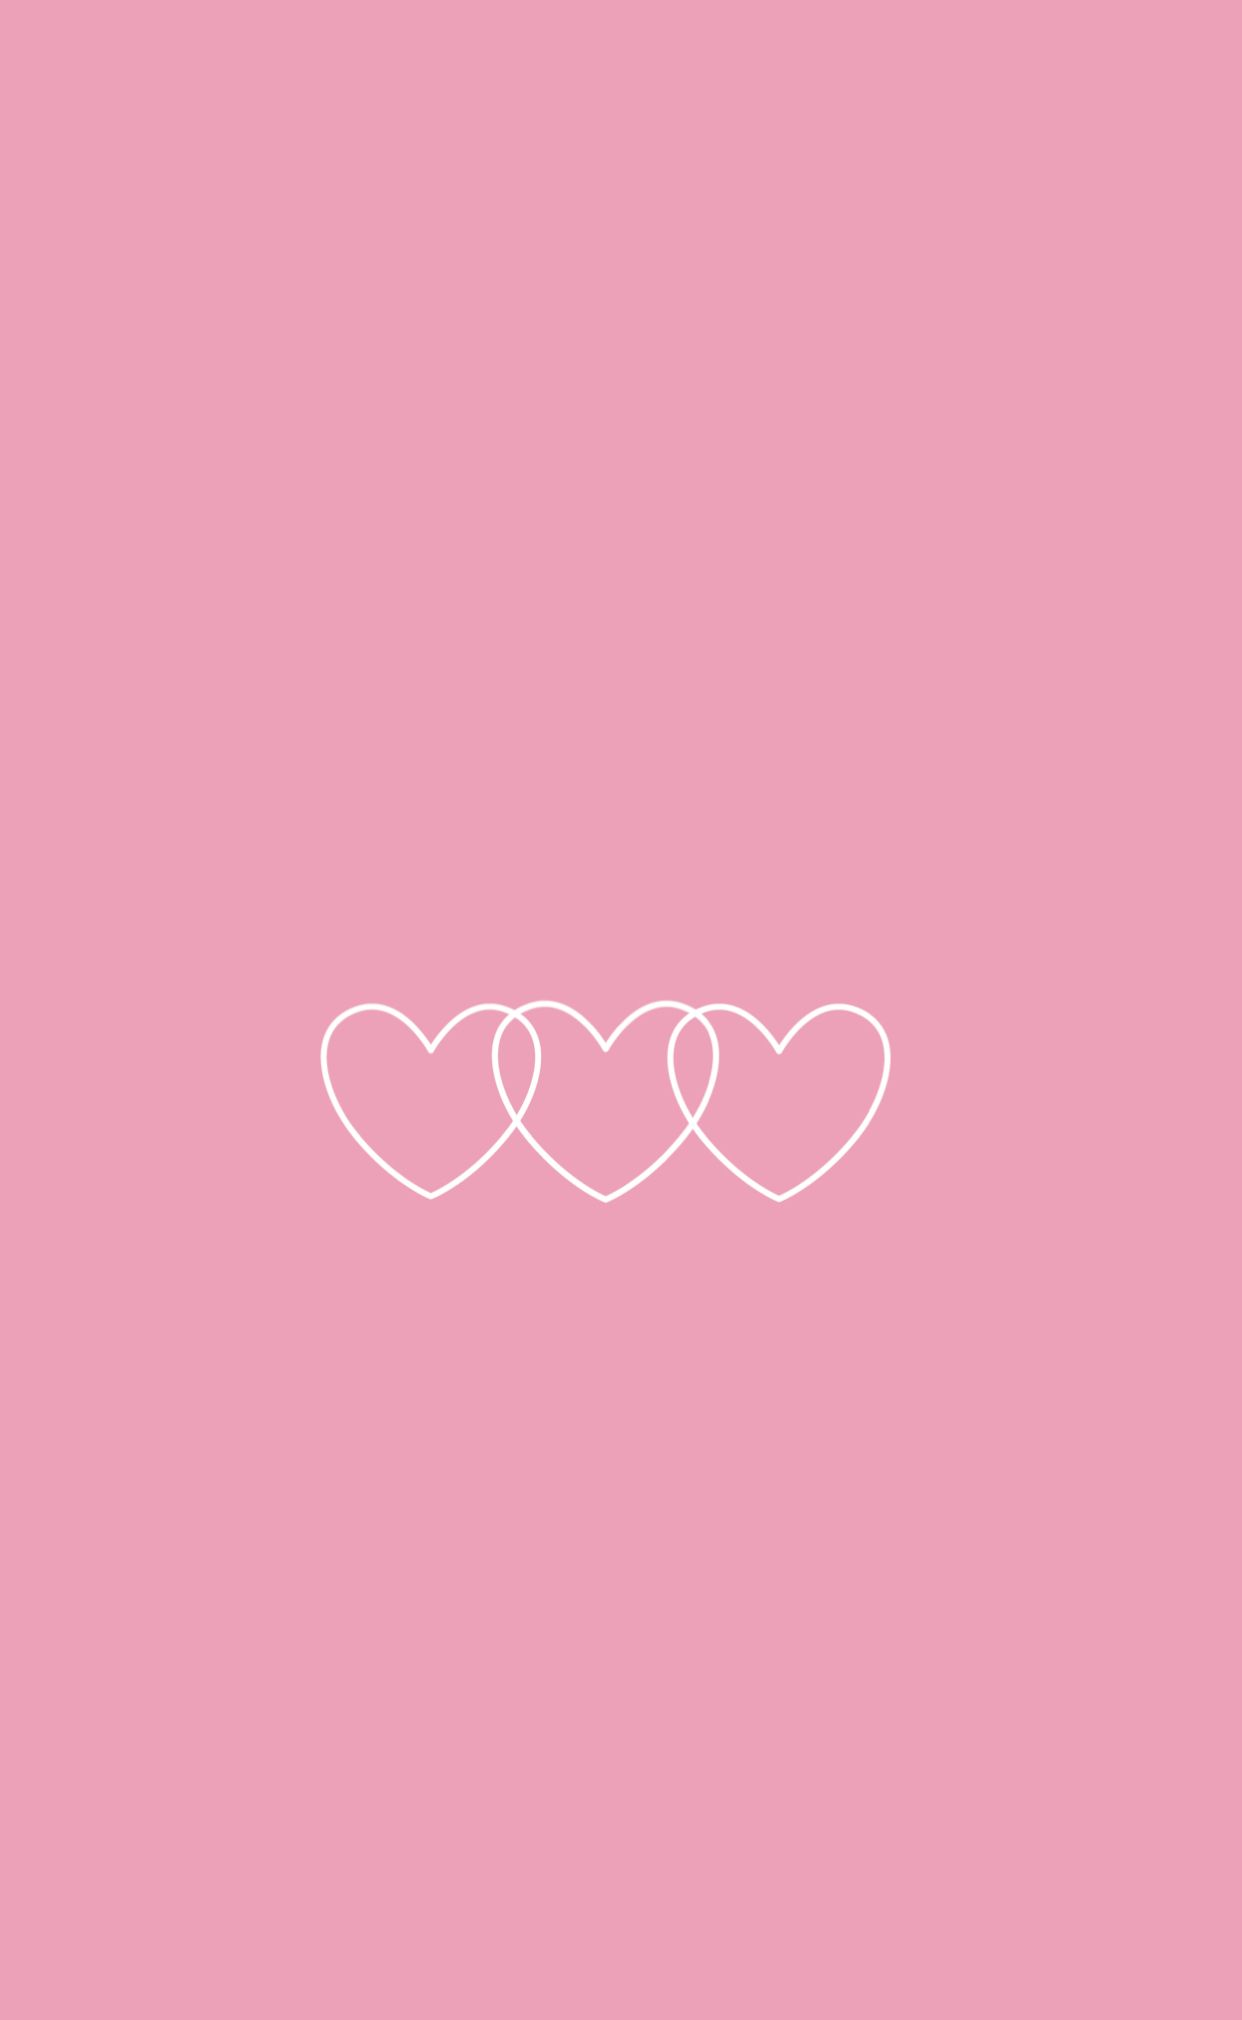 1242x2020 - Background Pink 2